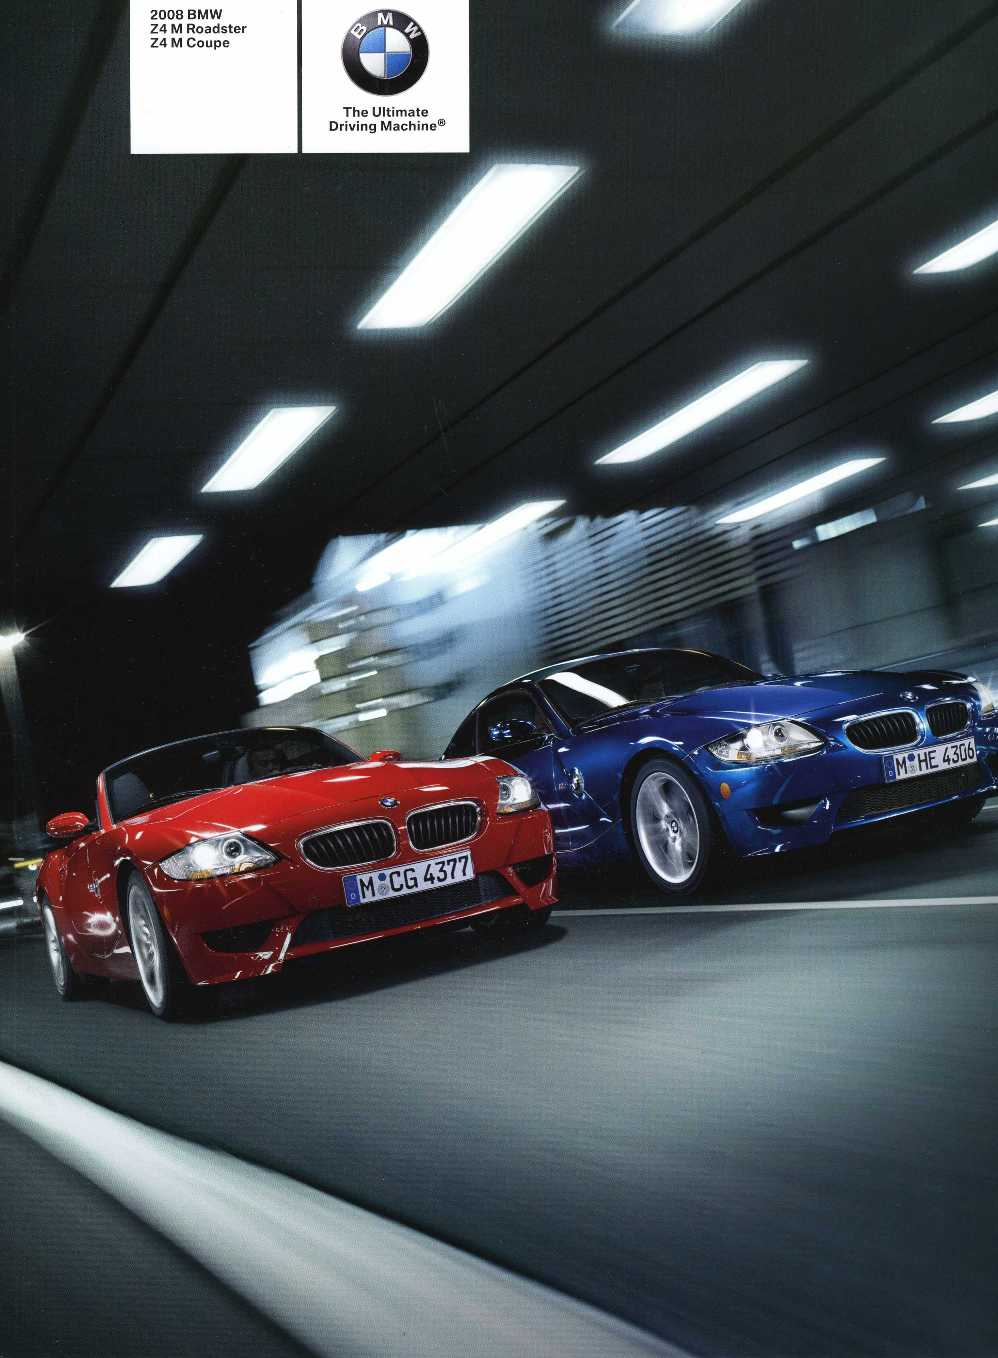 Brochure - 2008 BMW Z4 M Roadster Z4 M Coupe - E85 / E86 (1st version)